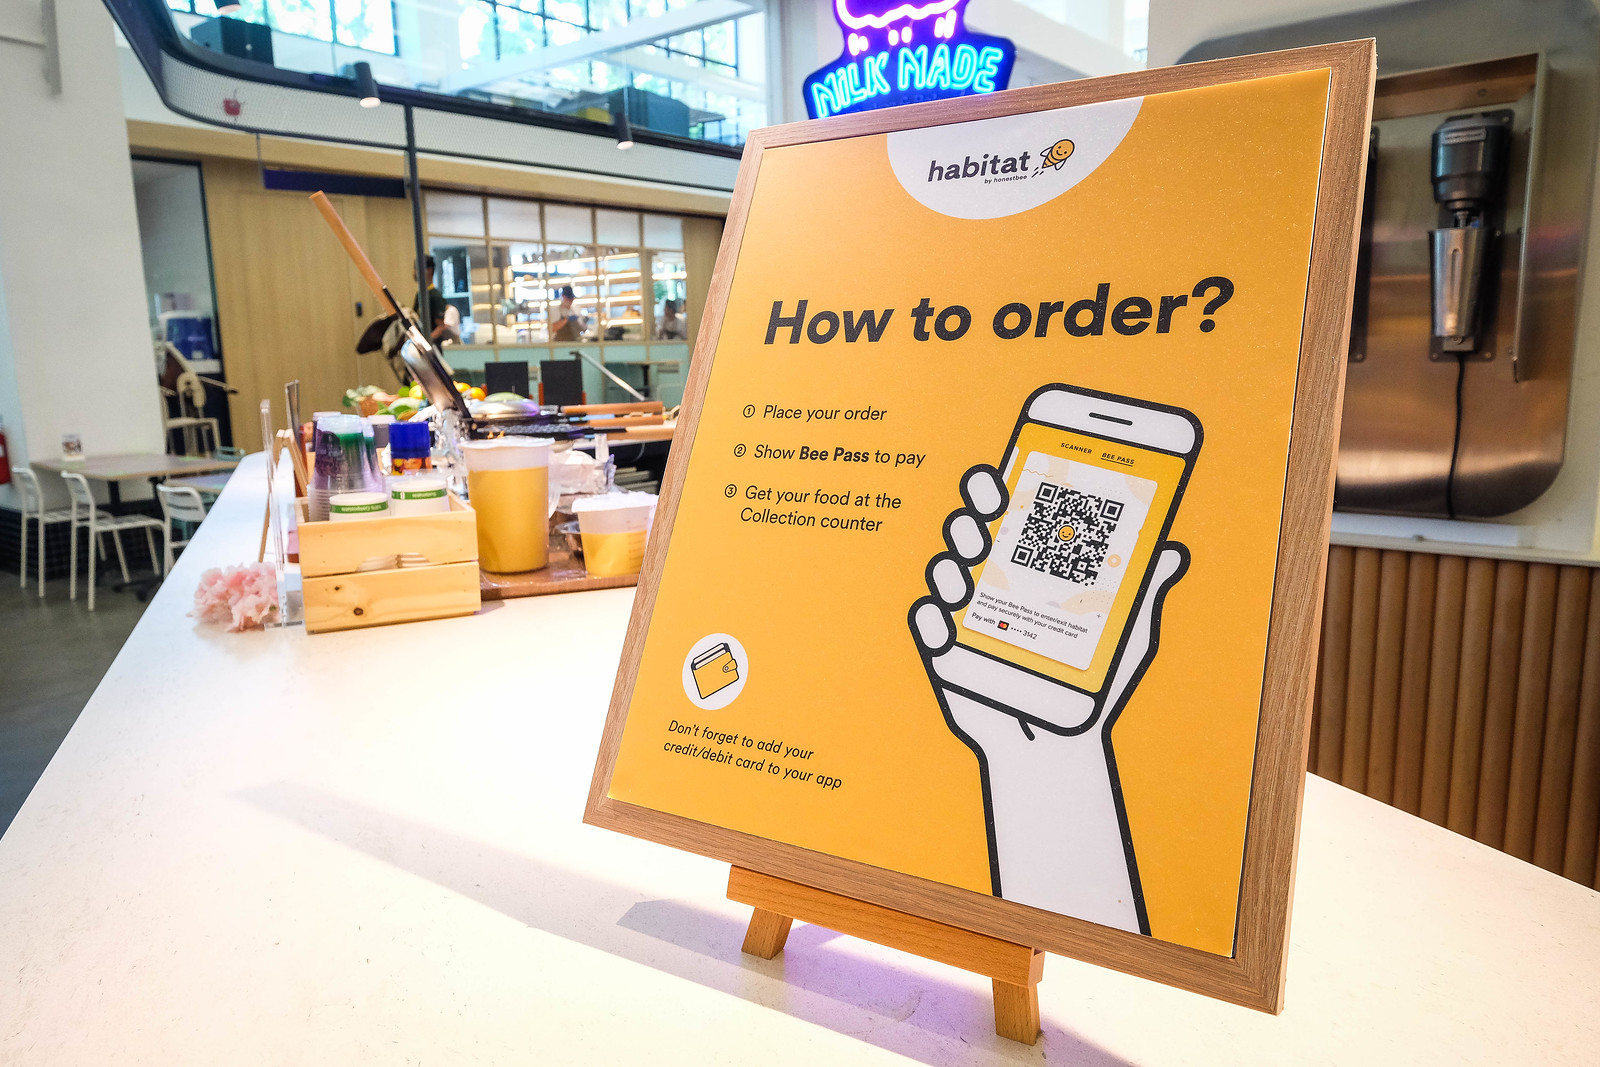 How to Order Signboard at Habitat by Honestbee